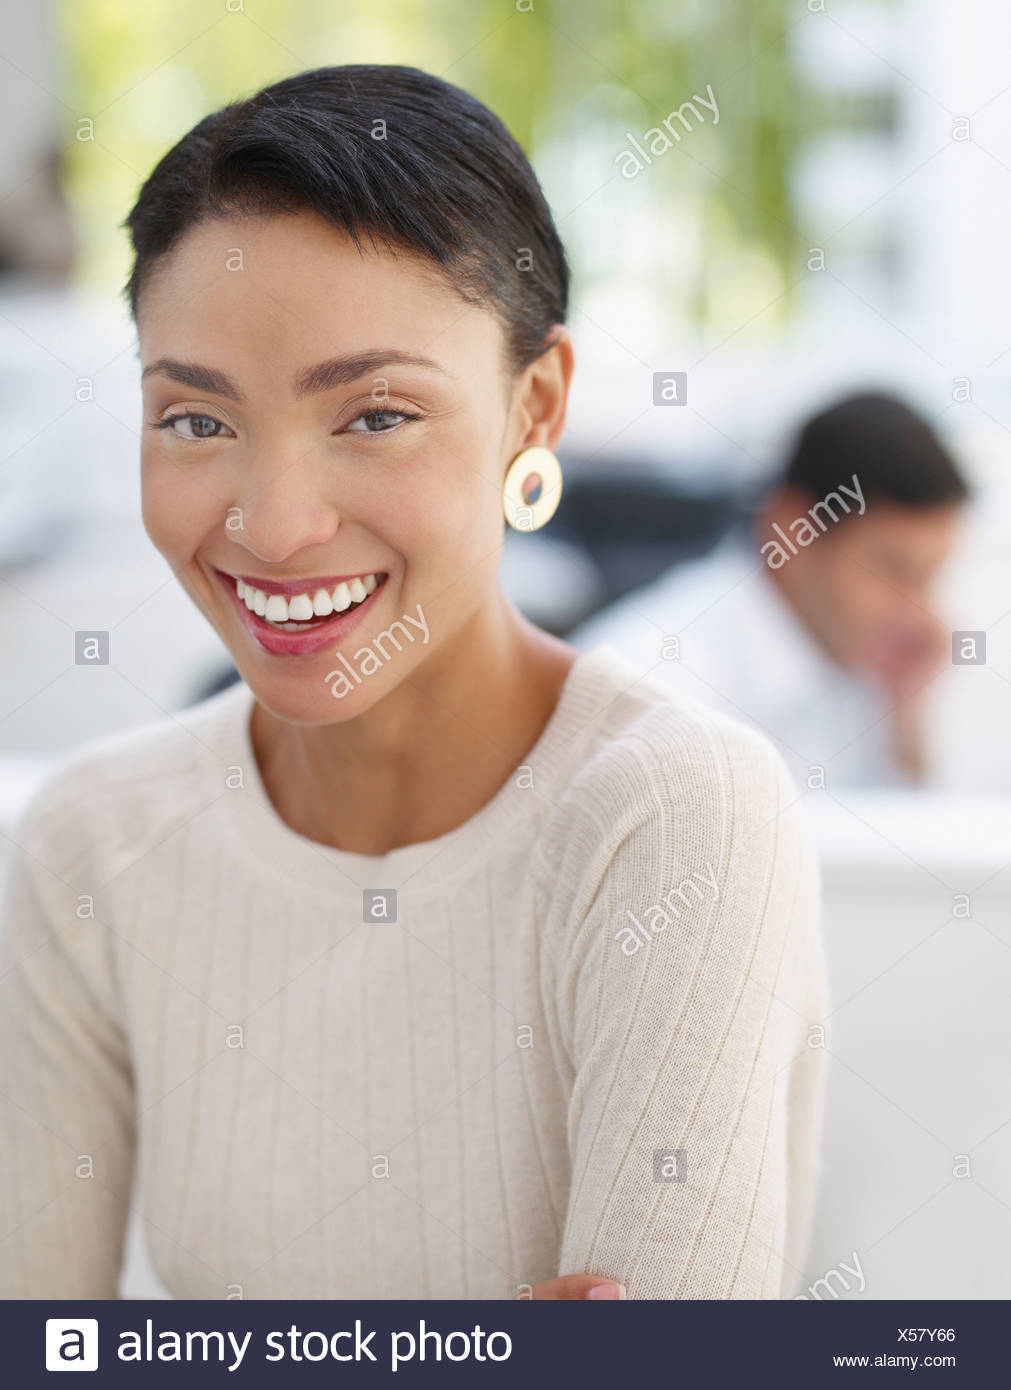 Businesswoman in office looking at camera with businessman in background - Stock Image